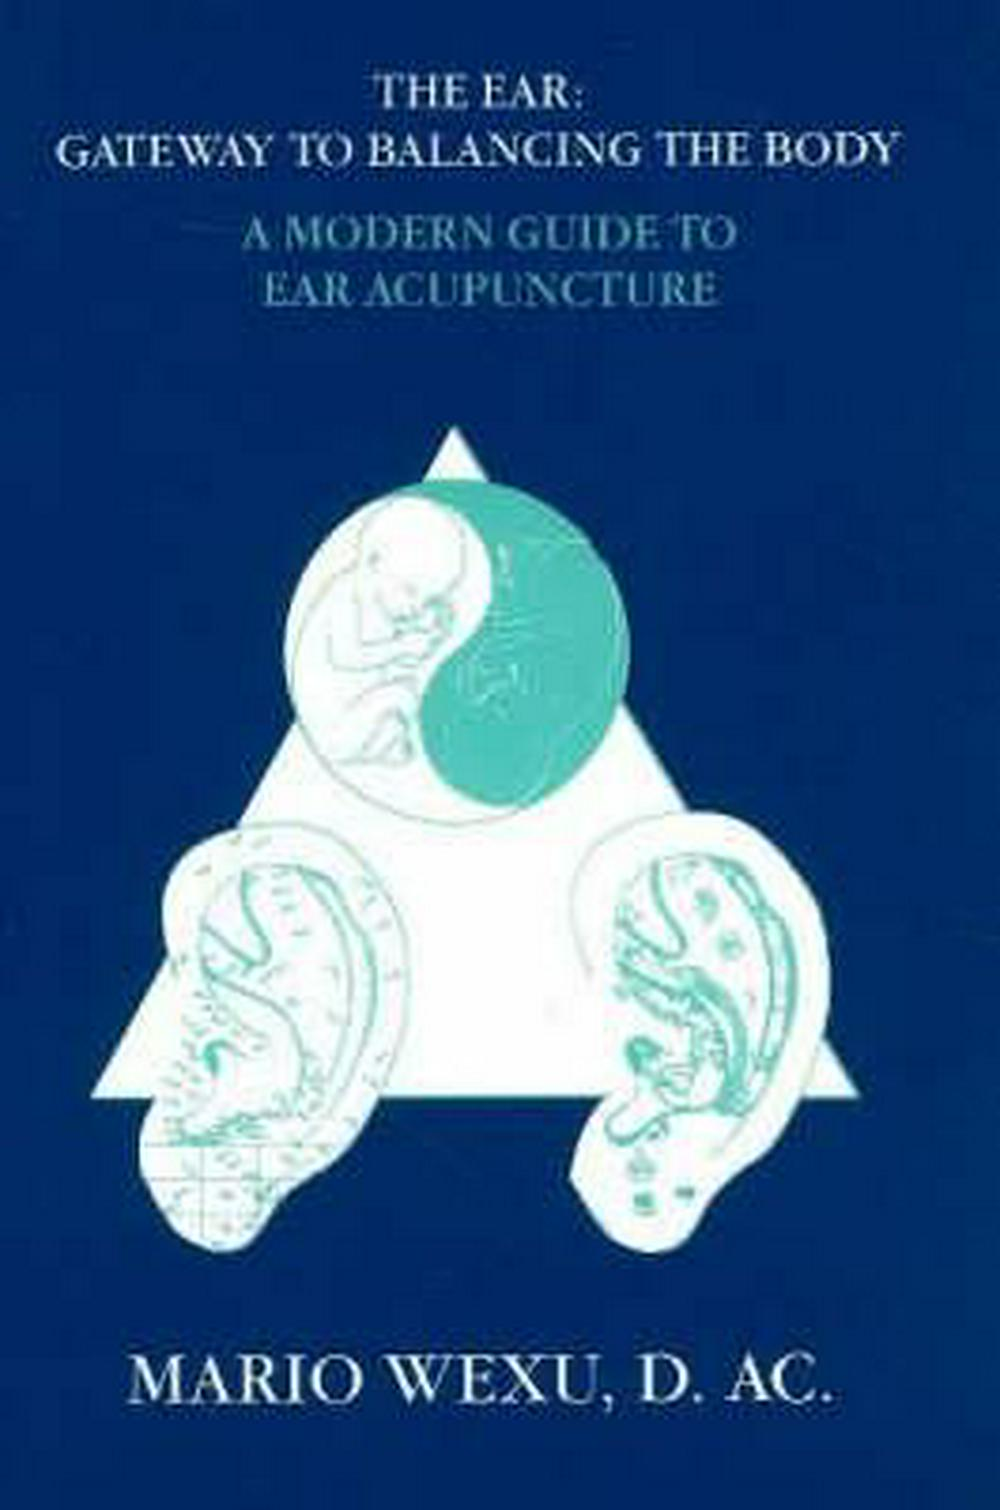 The Ear - Gateway to Balancing the Body